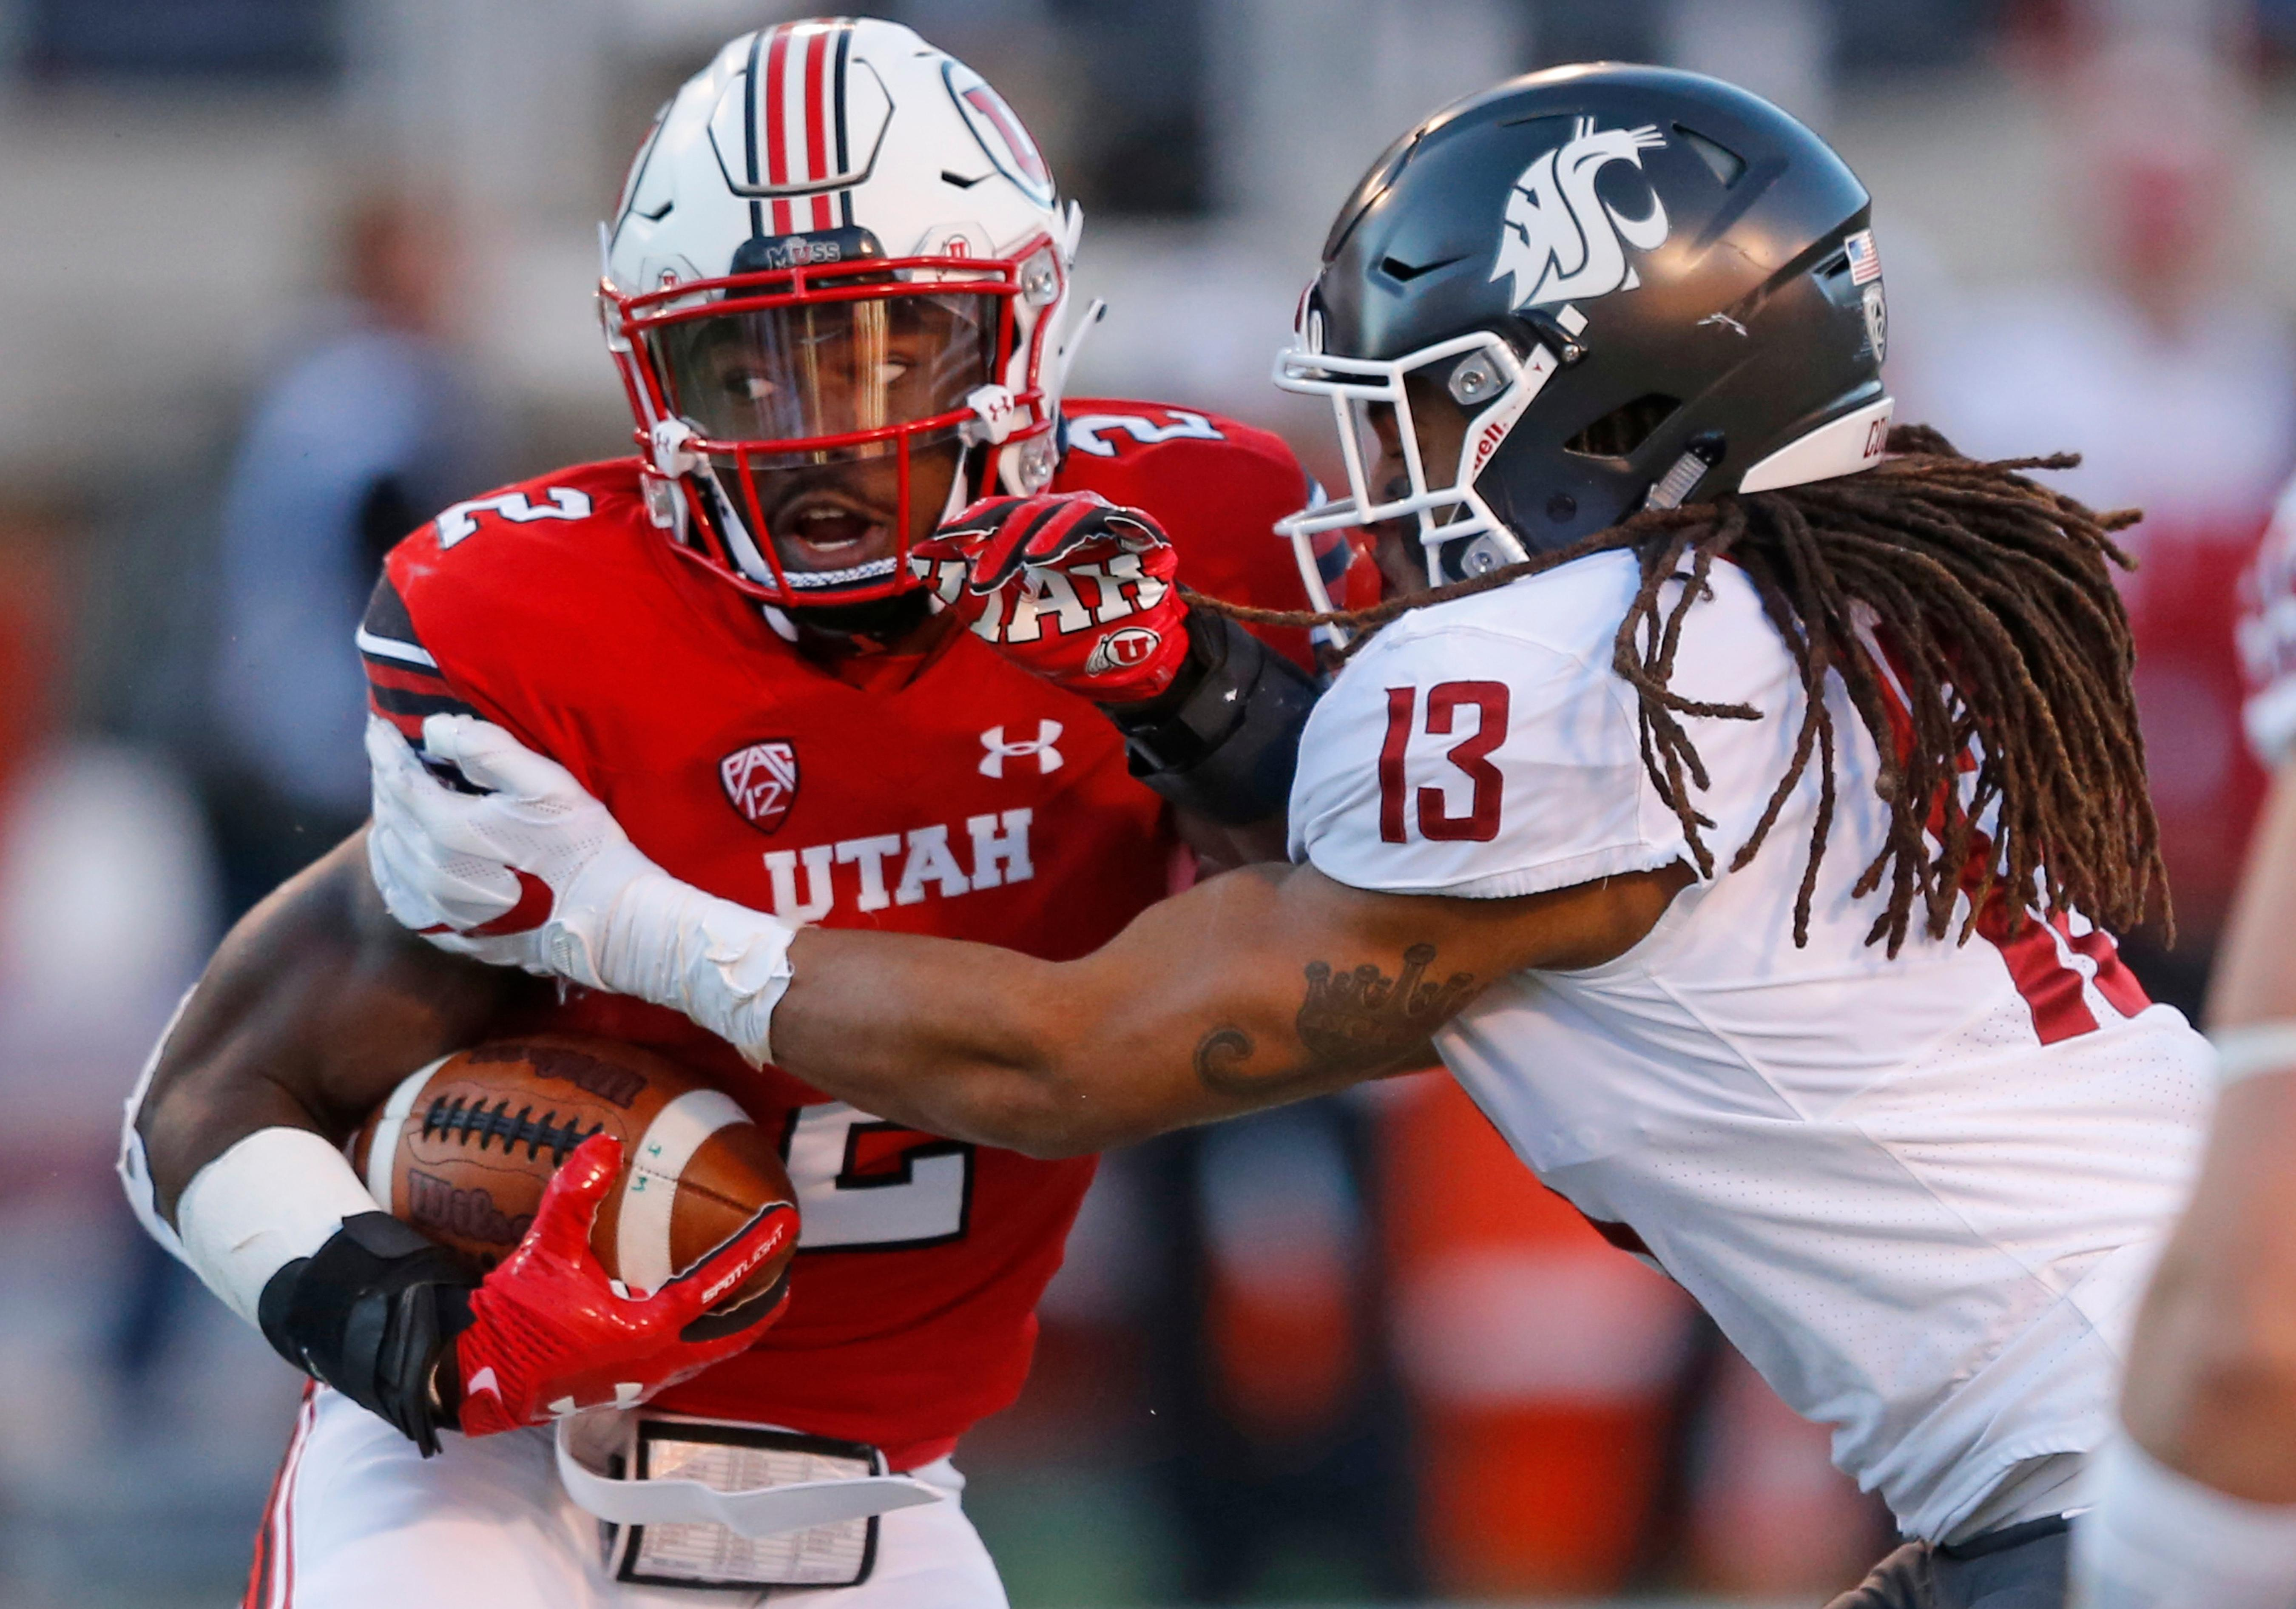 Utah running back Zack Moss (2) is tackled by Washington State linebacker Jahad Woods (13) in the first half during an NCAA college football game, Saturday, Nov. 11, 2017, in Salt Lake City. (AP Photo/Rick Bowmer)